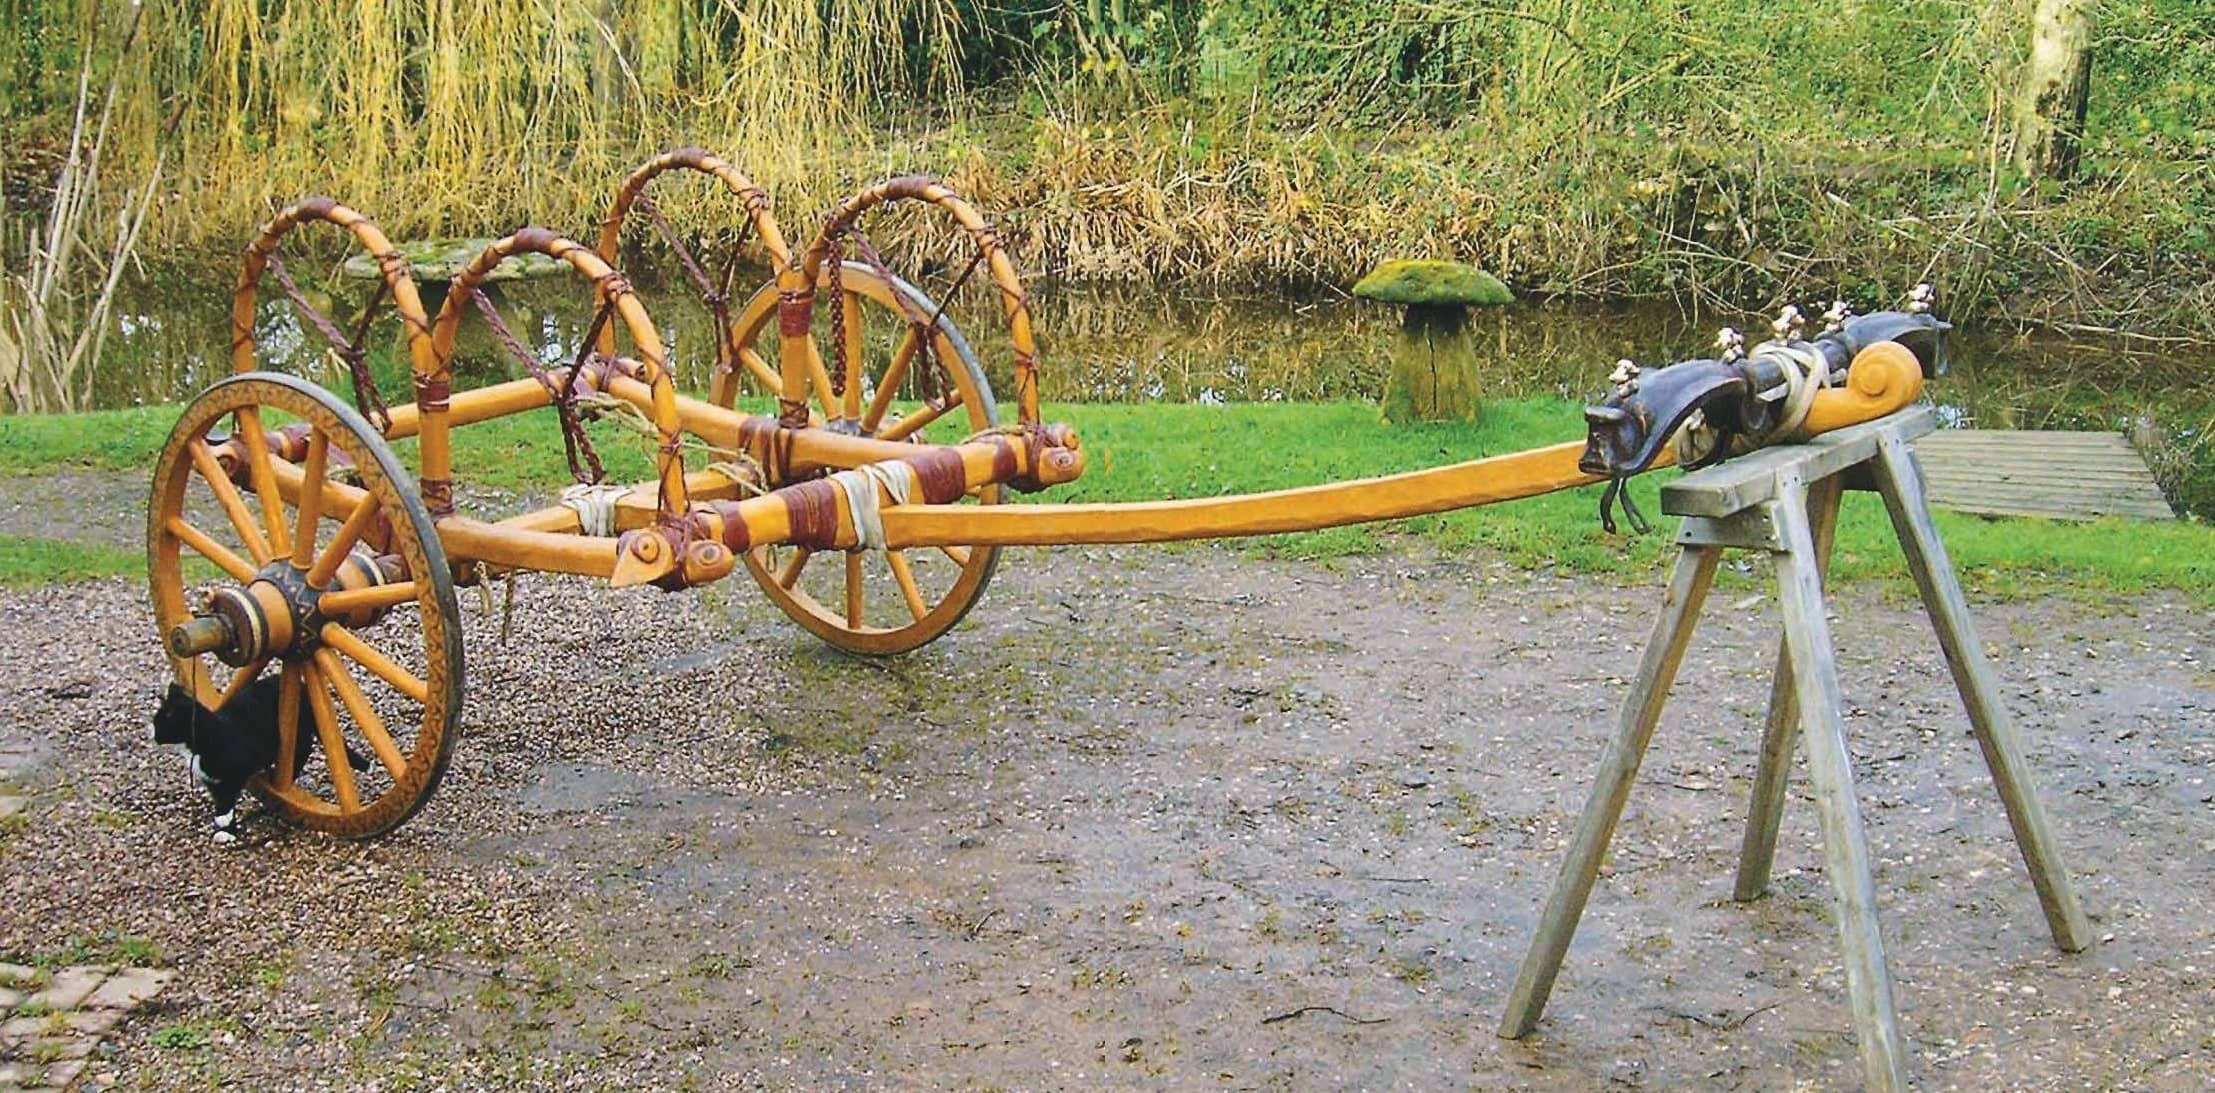 BUILDING AN IRON AGE CHARIOT